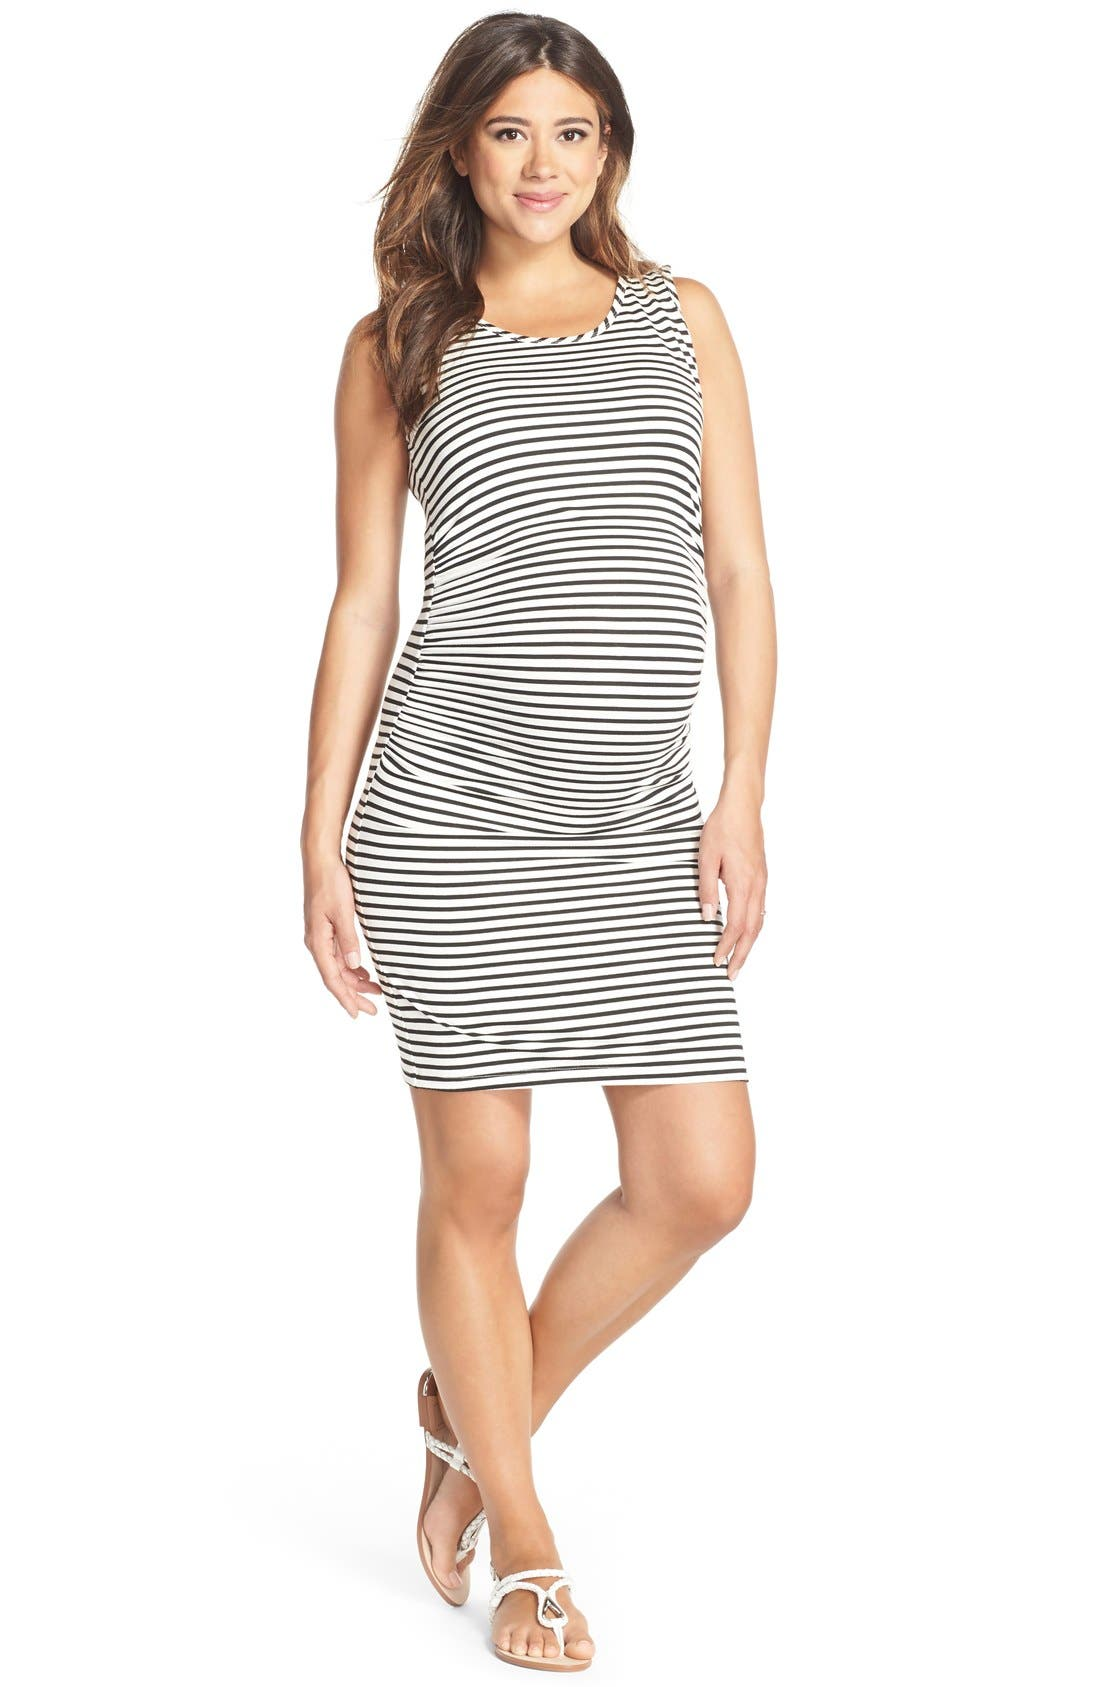 LAB40 Maternity/Nursing Tank Dress